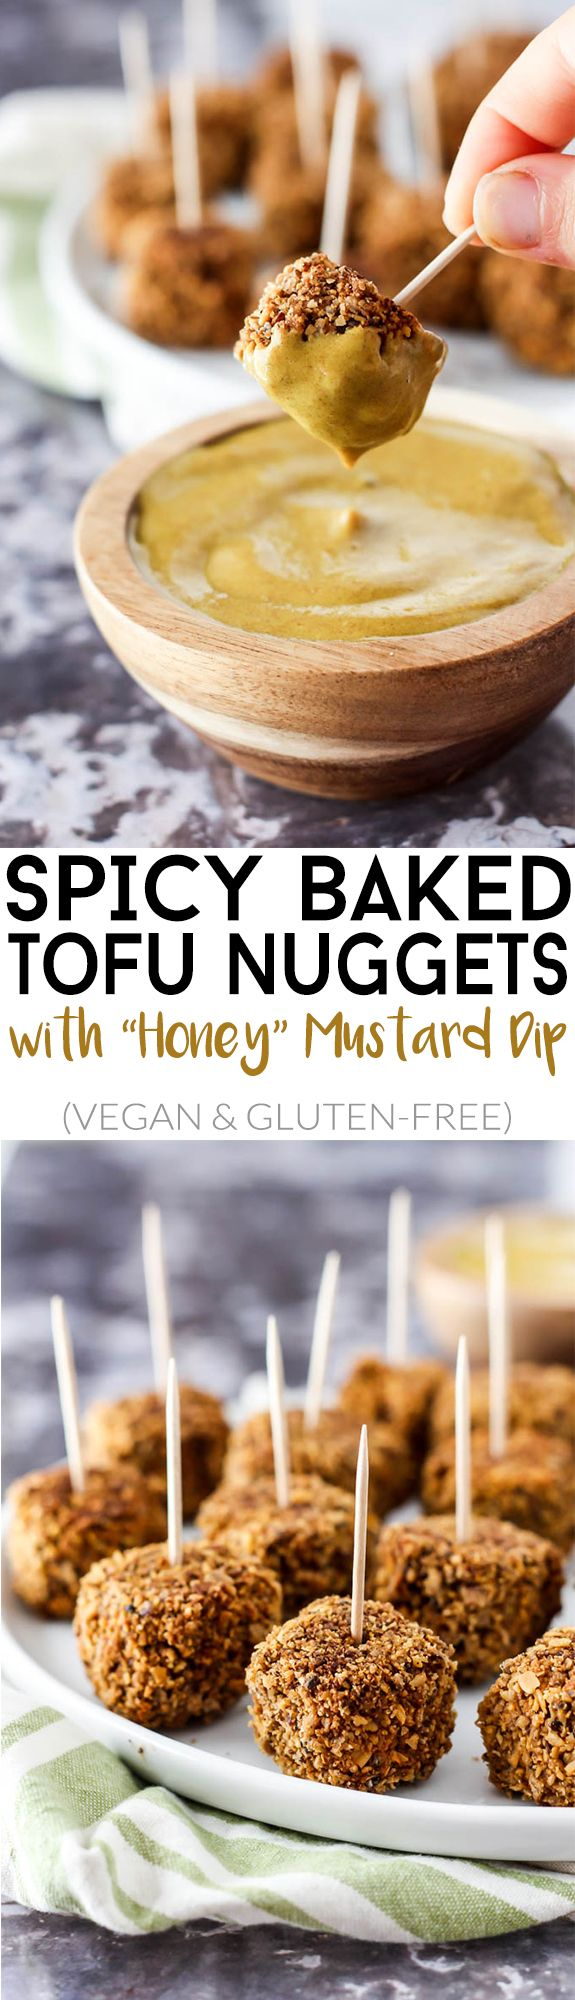 "Crispy, bite-sized & perfectly spicy, these Baked Tofu Nuggets with ""Honey"" Mustard Dip are your new favorite finger food or appetizer! Vegan & gluten-free."